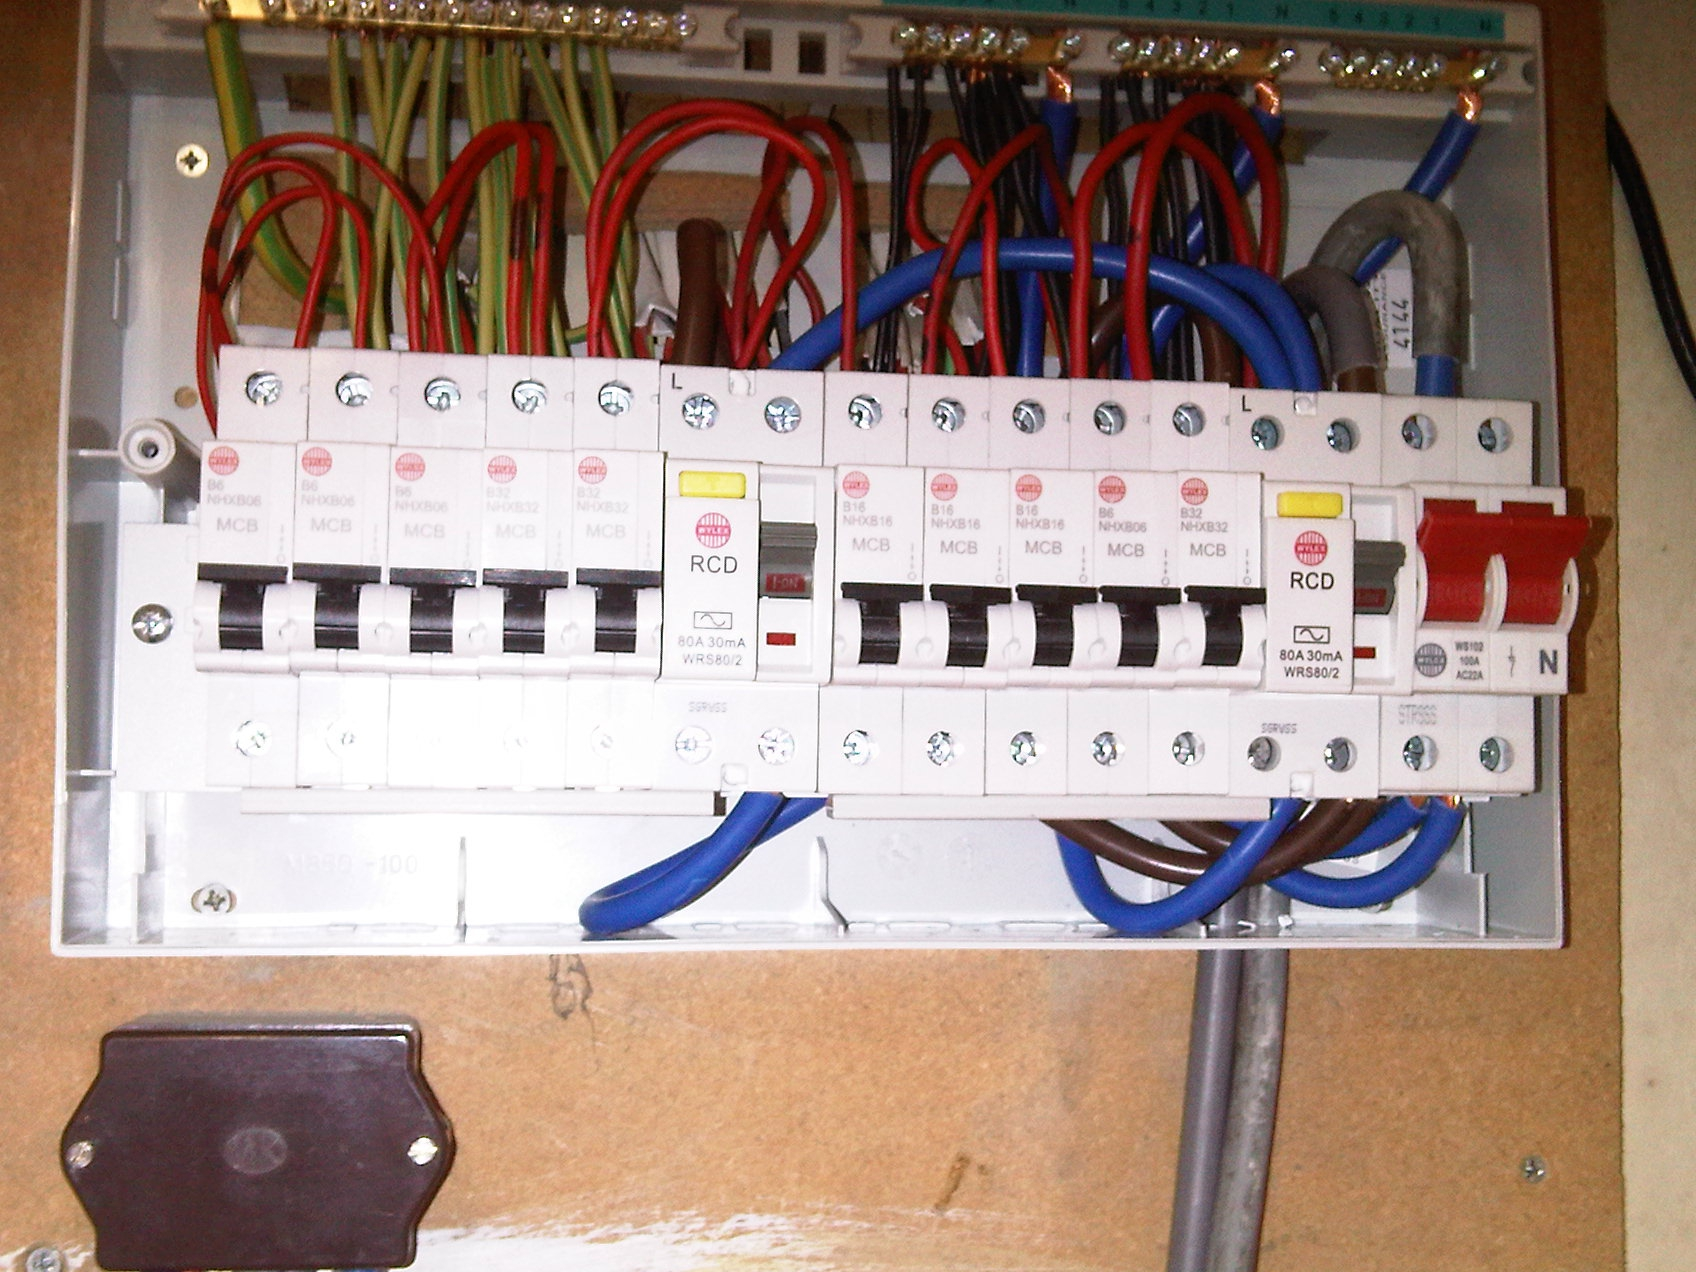 Fusebox 4 household fuse box residential fuse boxes \u2022 wiring diagrams j how to reset fuse box in house at virtualis.co